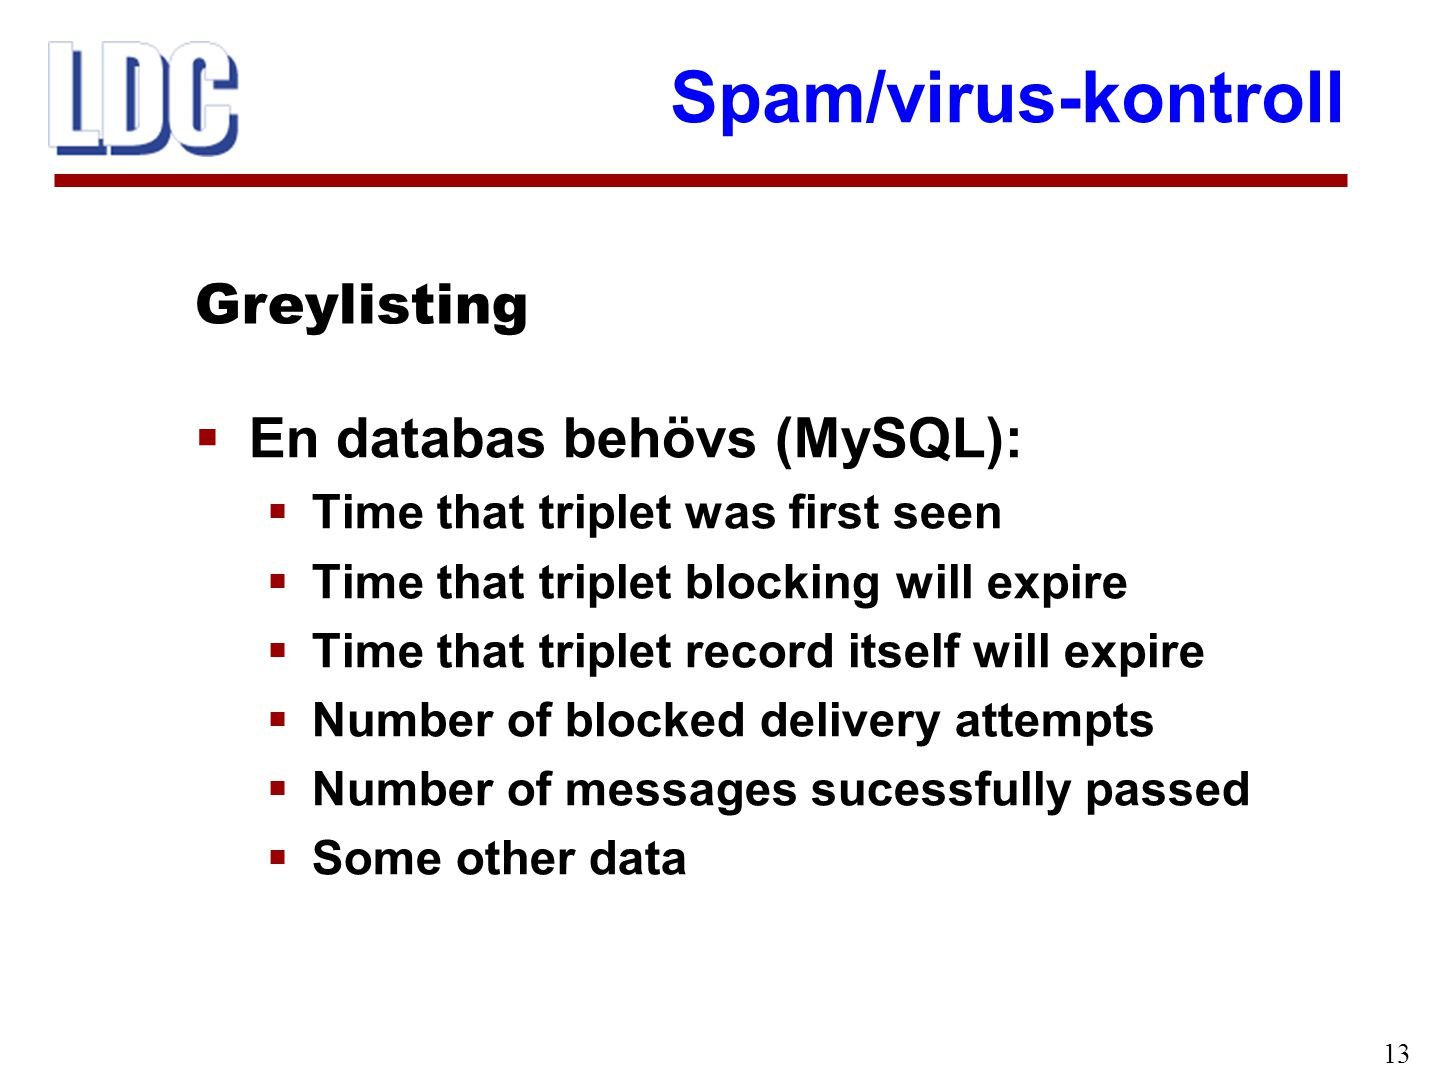 Spam/virus-kontroll 13  En databas behövs (MySQL):  Time that triplet was first seen  Time that triplet blocking will expire  Time that triplet record itself will expire  Number of blocked delivery attempts  Number of messages sucessfully passed  Some other data Greylisting